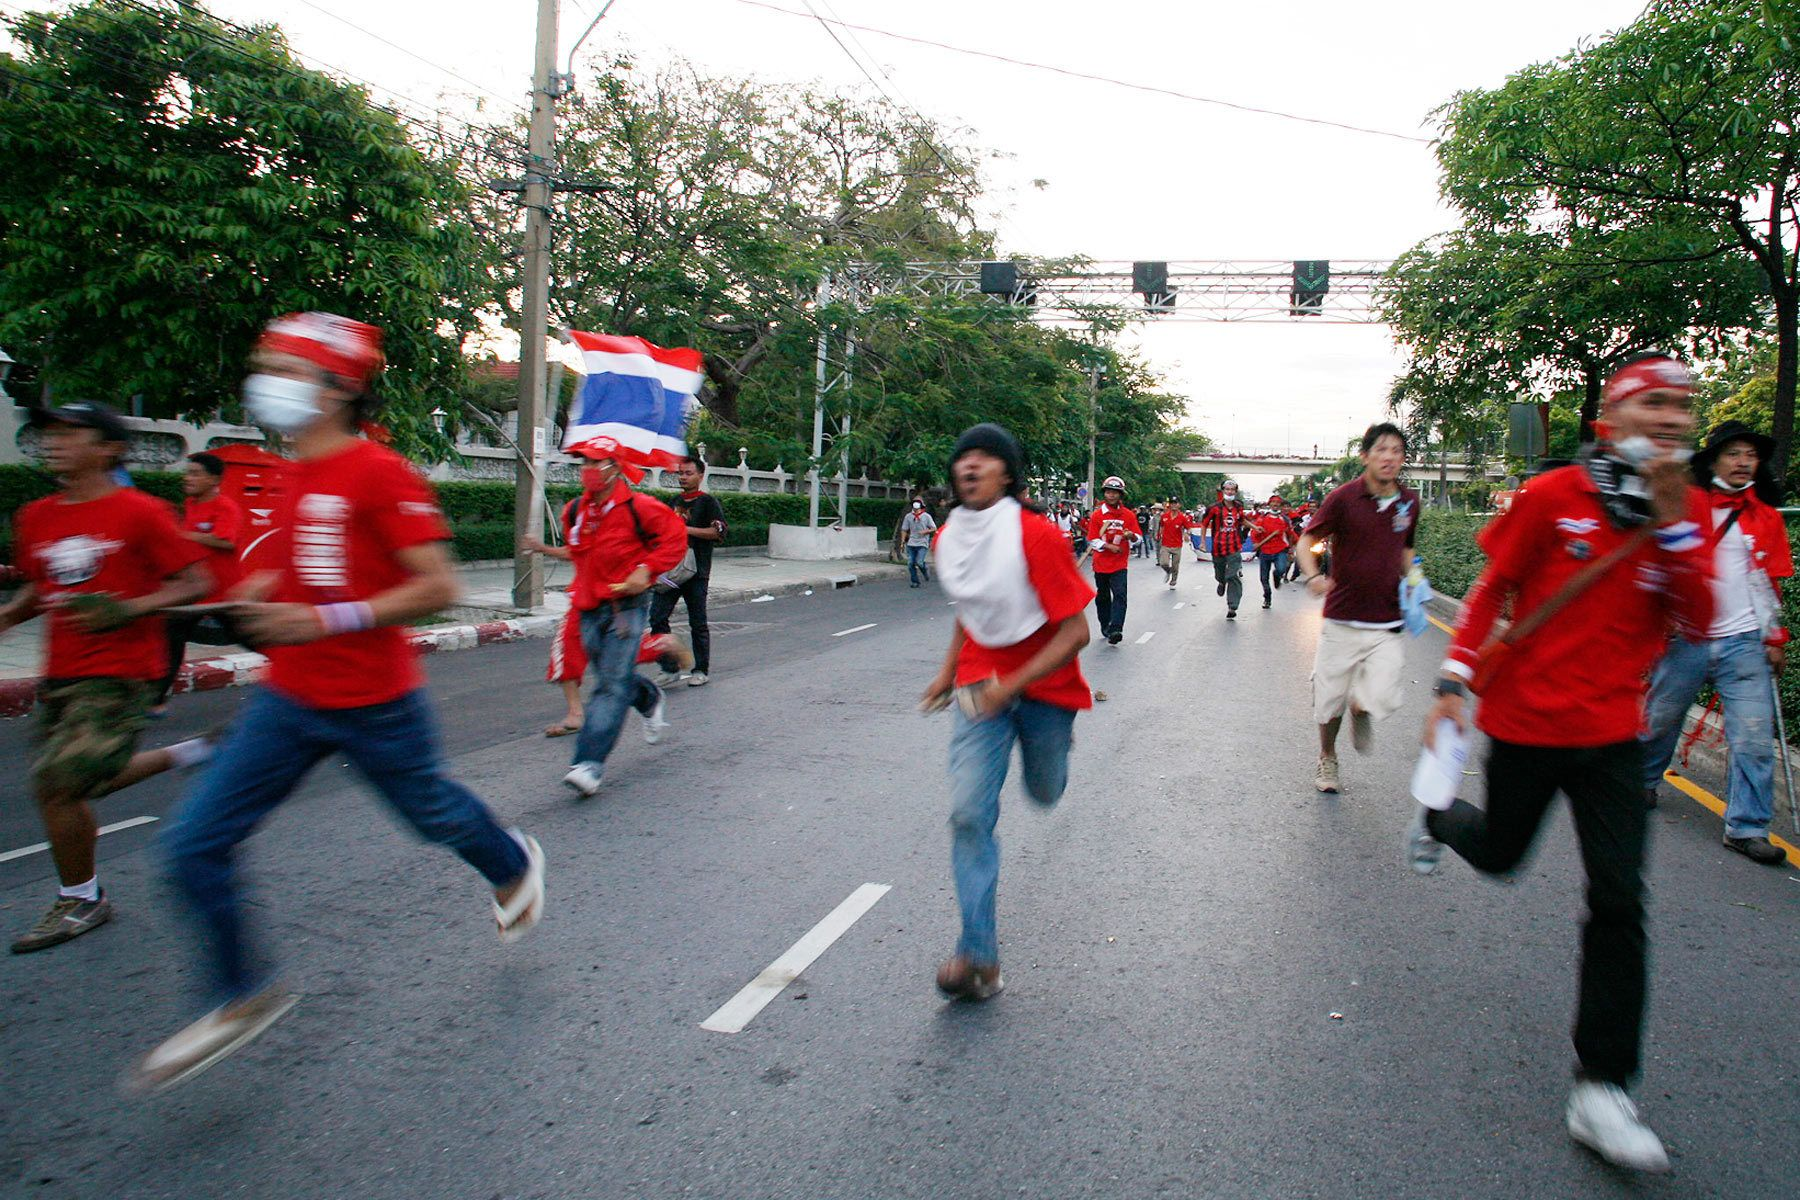 Members of the anti-government United Front for Democracy against Dictatorship (UDD) run during a street fight against residents in Bangkok.